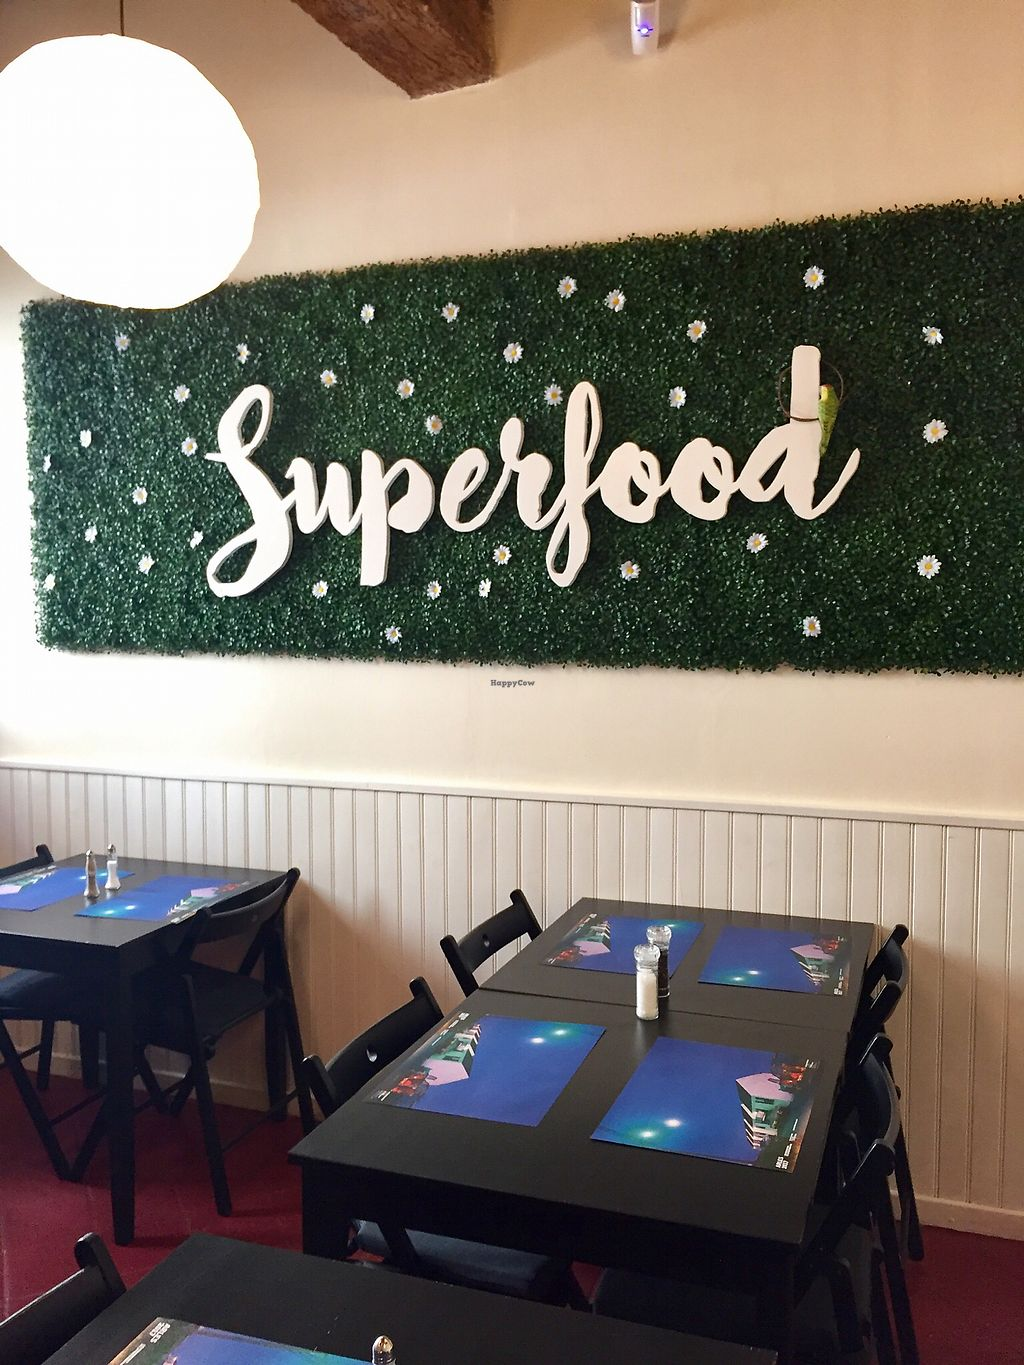 """Photo of Superfood  by <a href=""""/members/profile/amysworld"""">amysworld</a> <br/>Room in the back <br/> October 8, 2017  - <a href='/contact/abuse/image/81557/313329'>Report</a>"""